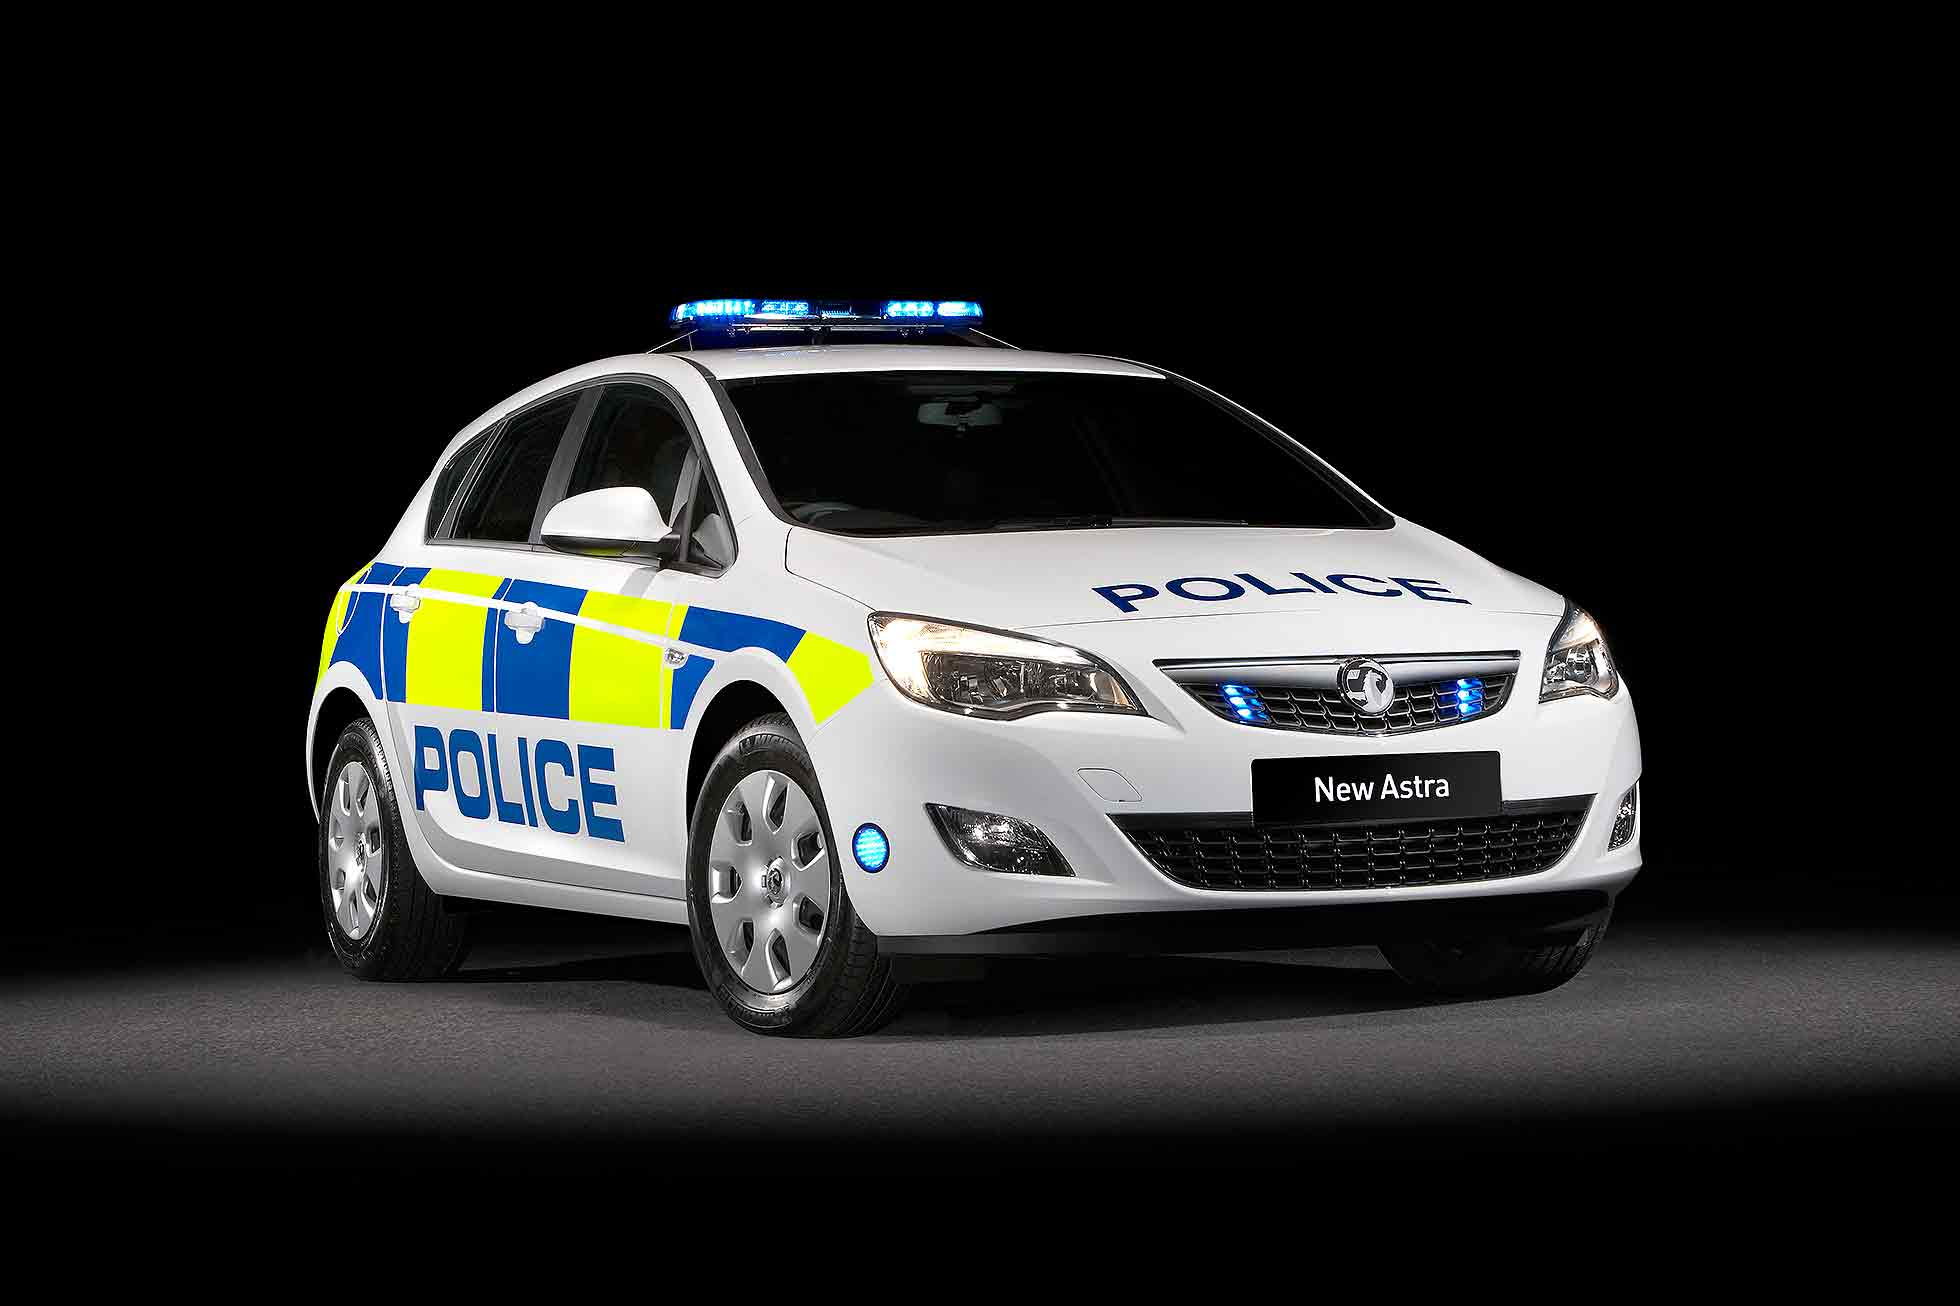 Police Vauxhall Astra